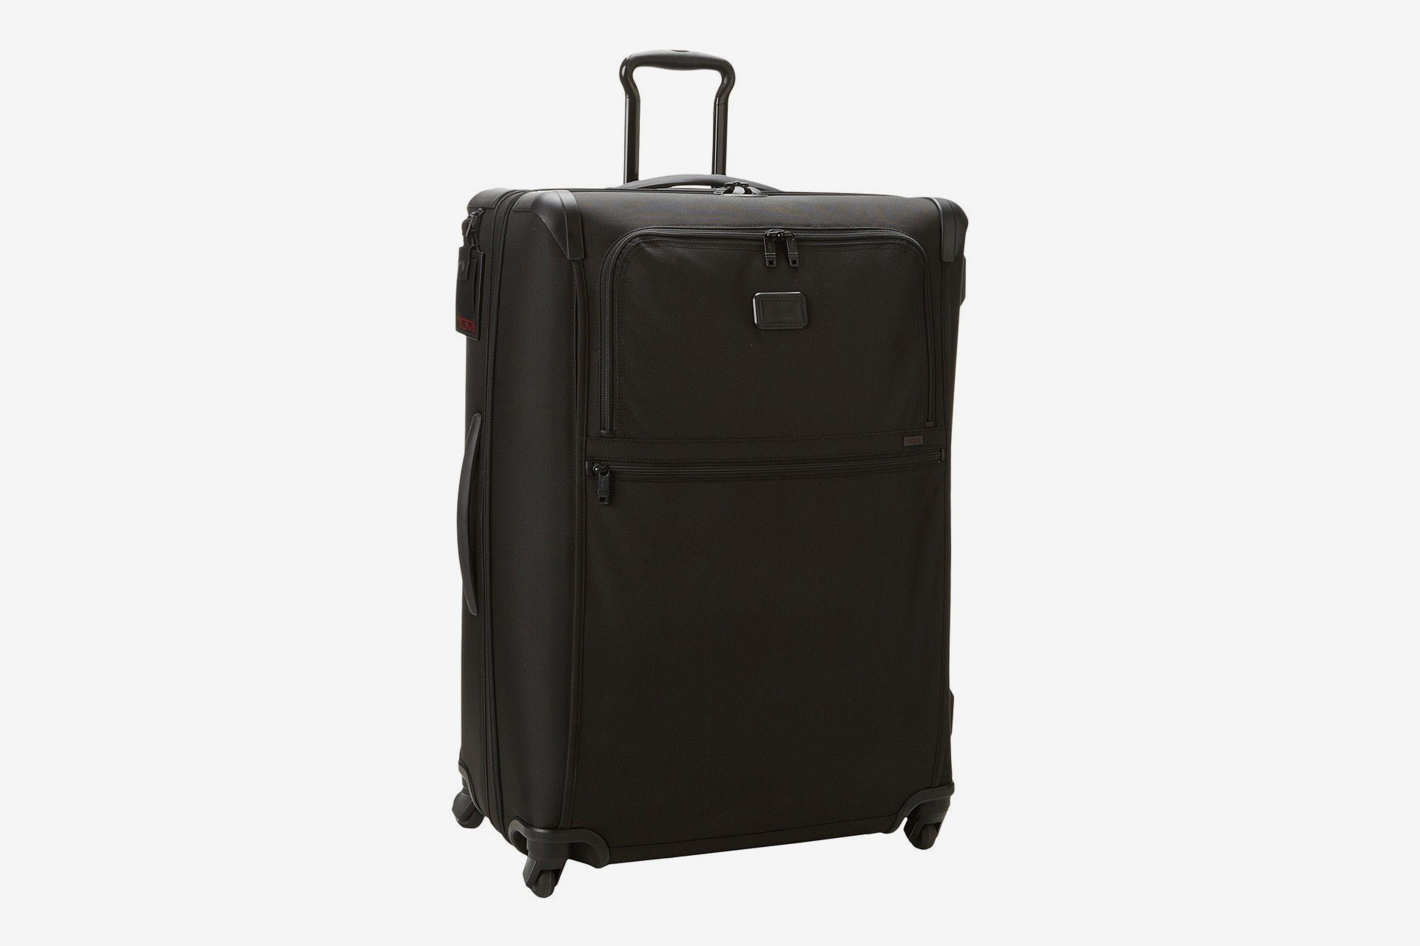 Tumi Alpha 2 Extended Trip Expandable 4-Wheeled Packing Case